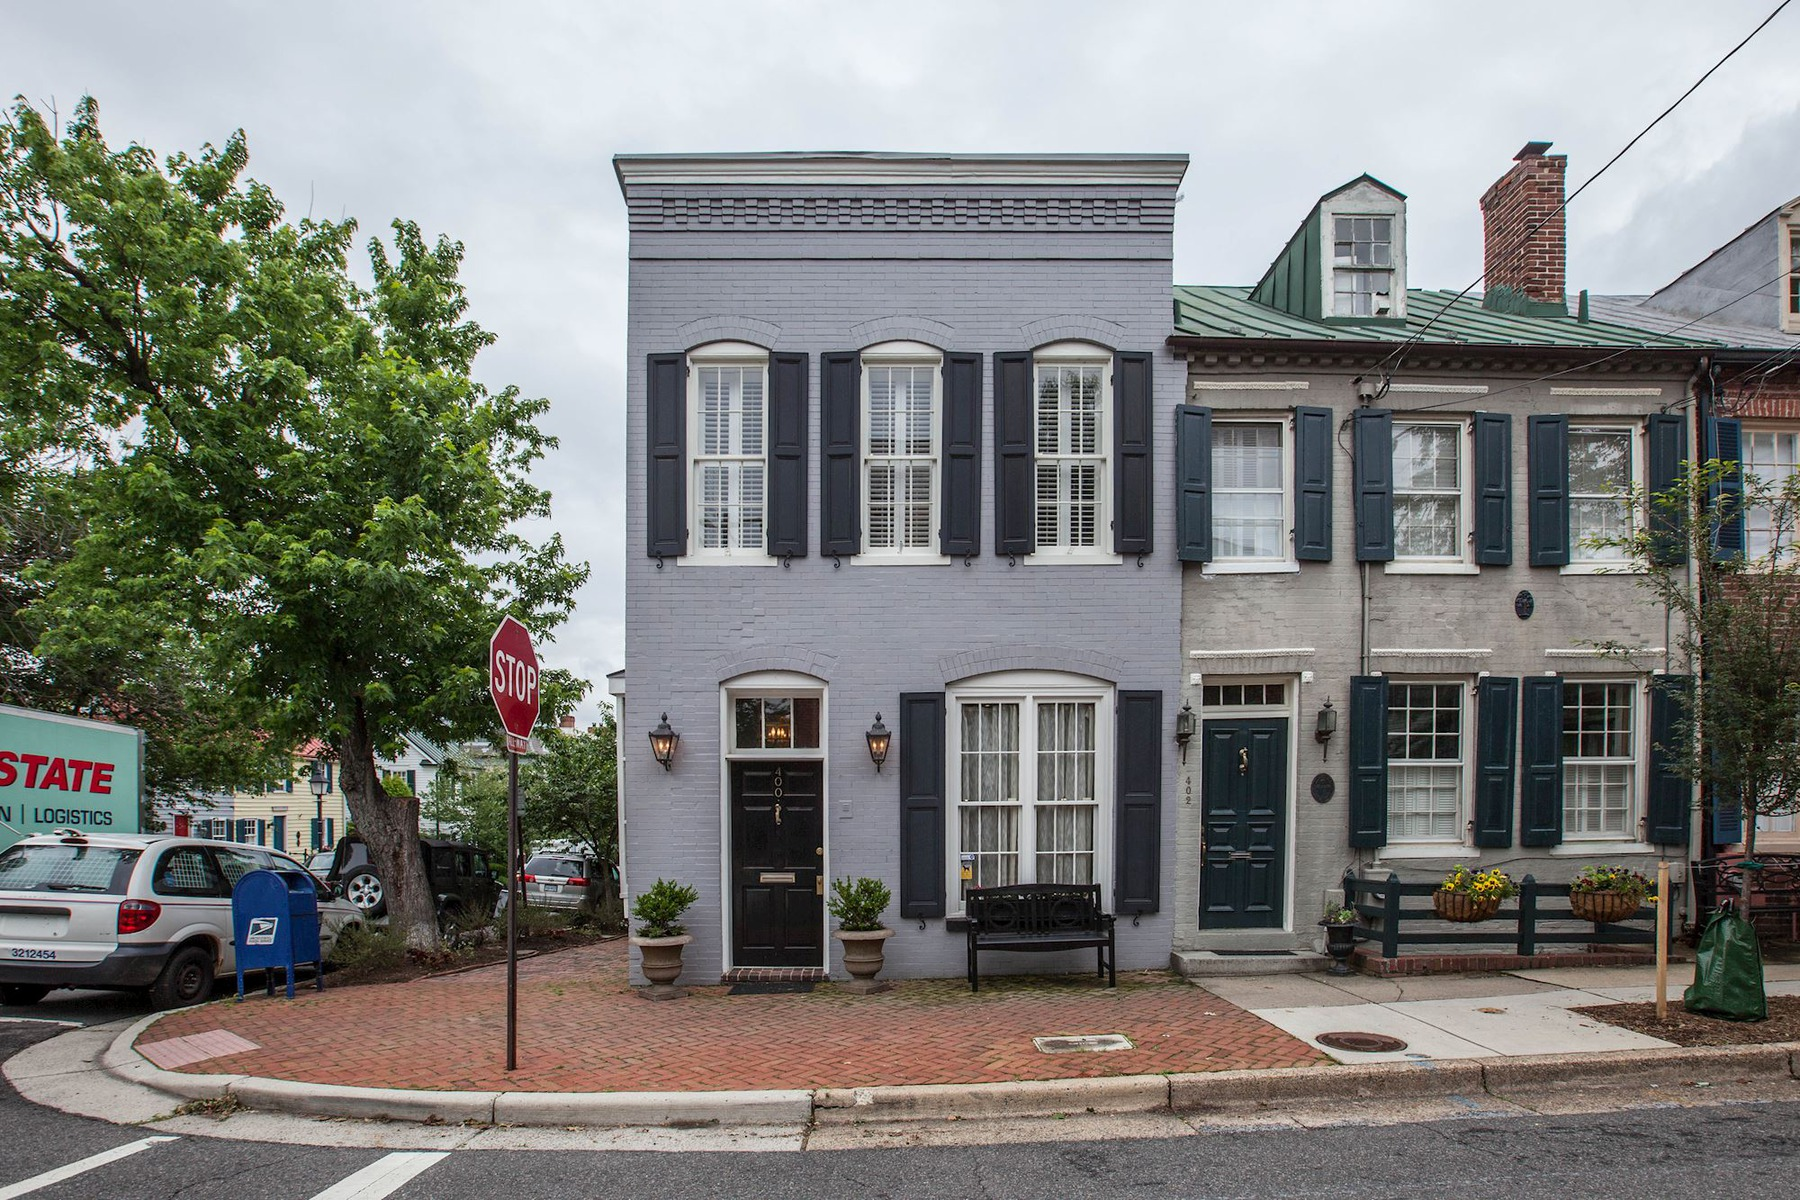 Townhouse for Sale at 400 Lee Street S, Alexandria Alexandria, Virginia 22314 United States